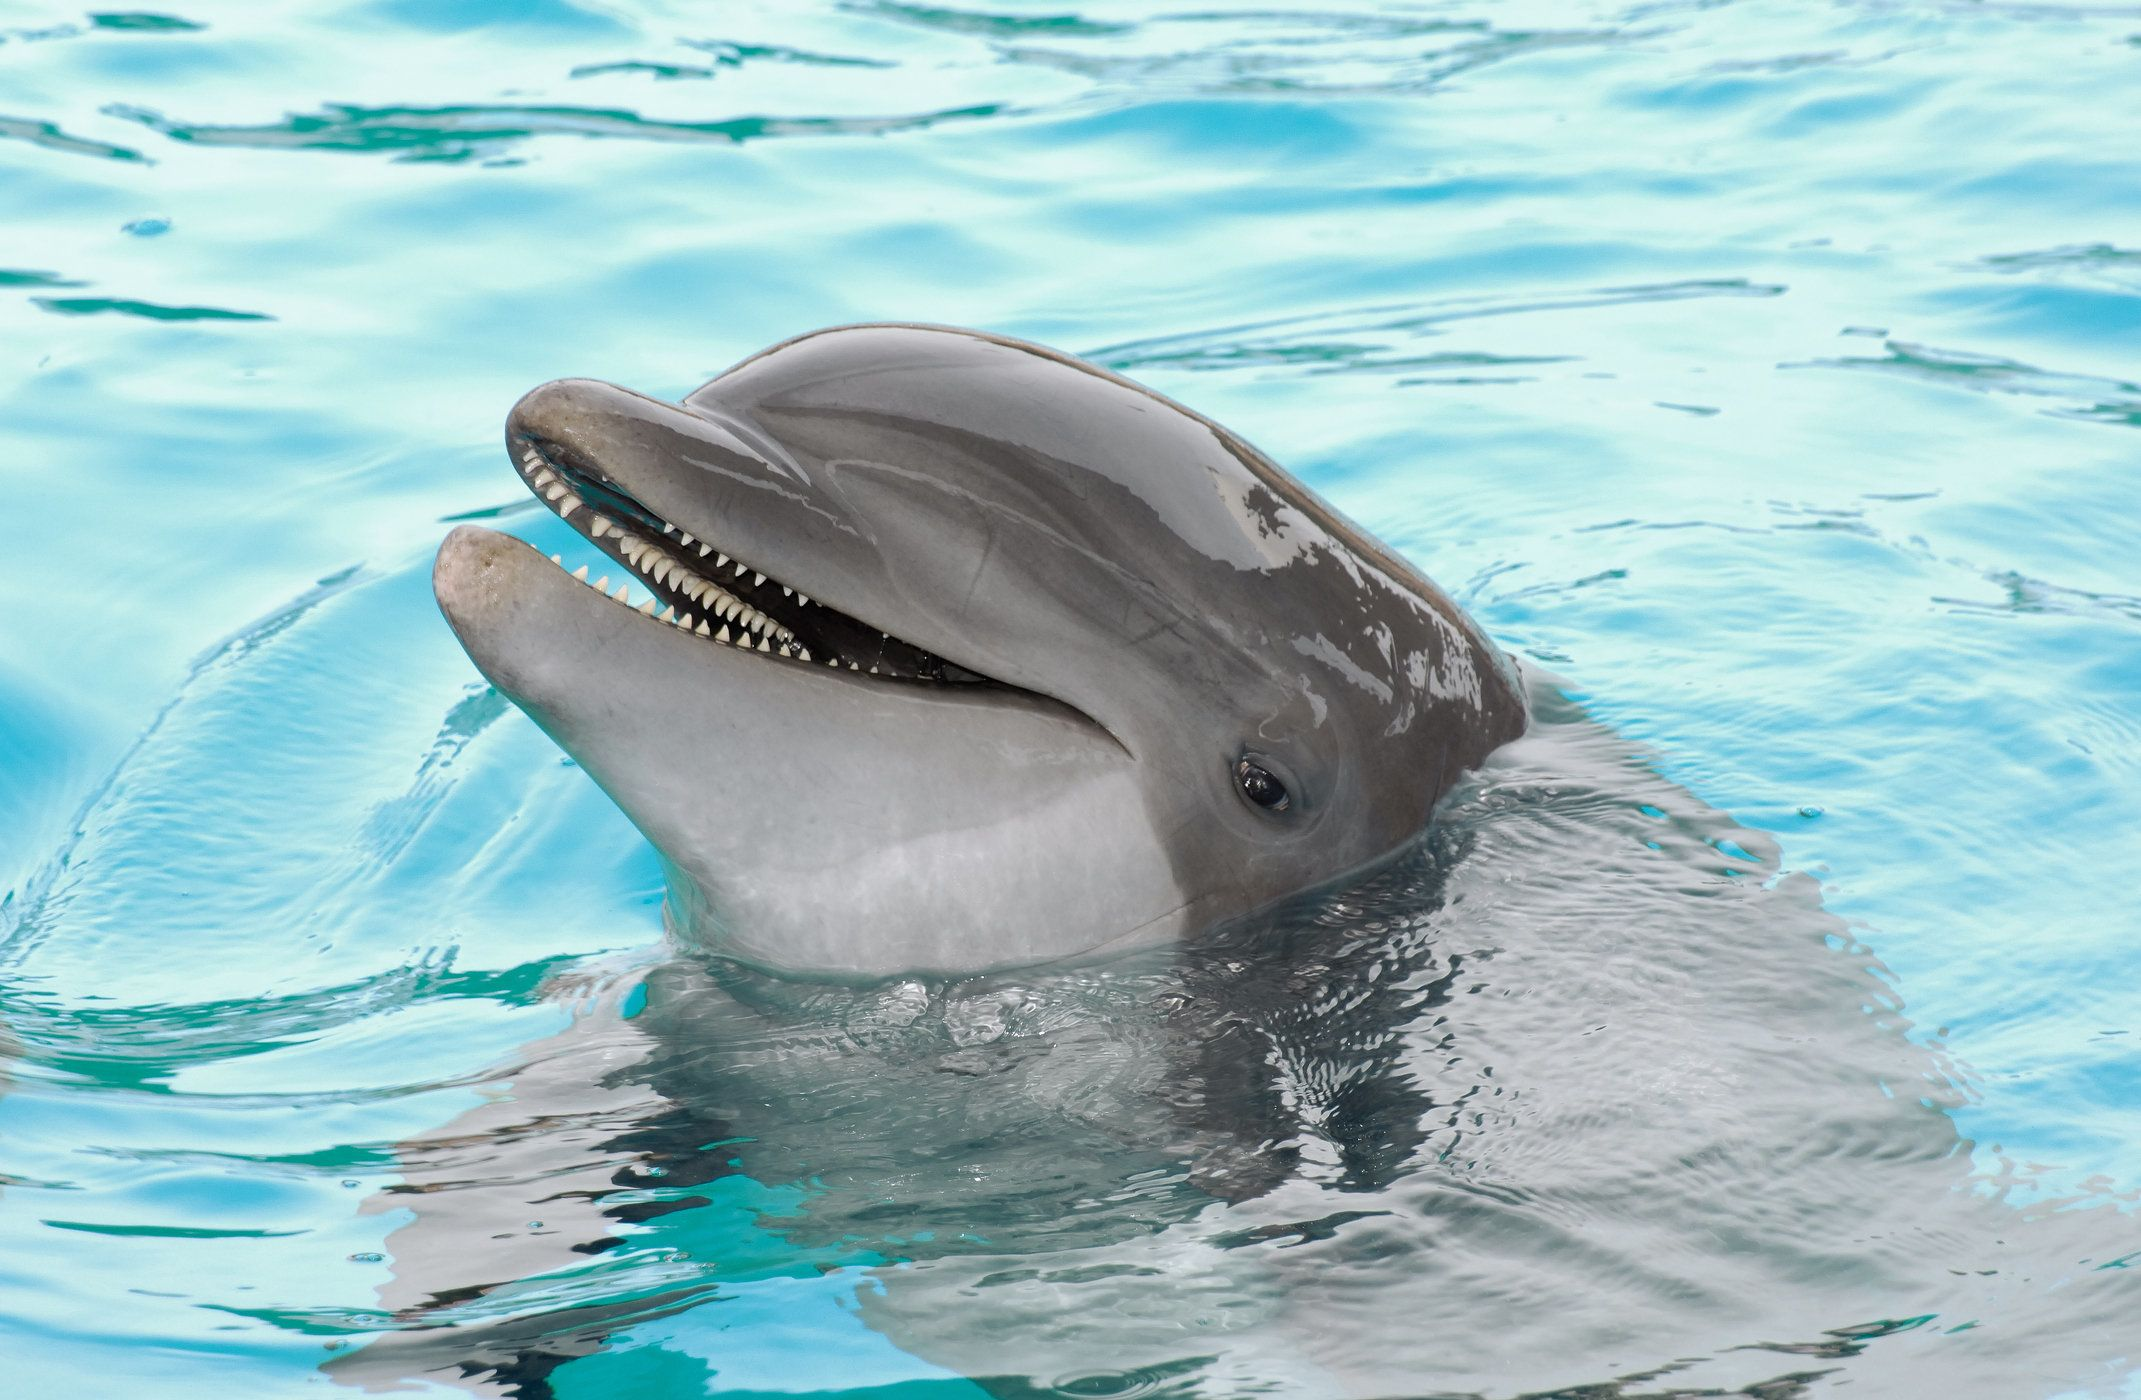 Some scientists have poured cold water over aRussian study that suggests dolphins have their own language in which they